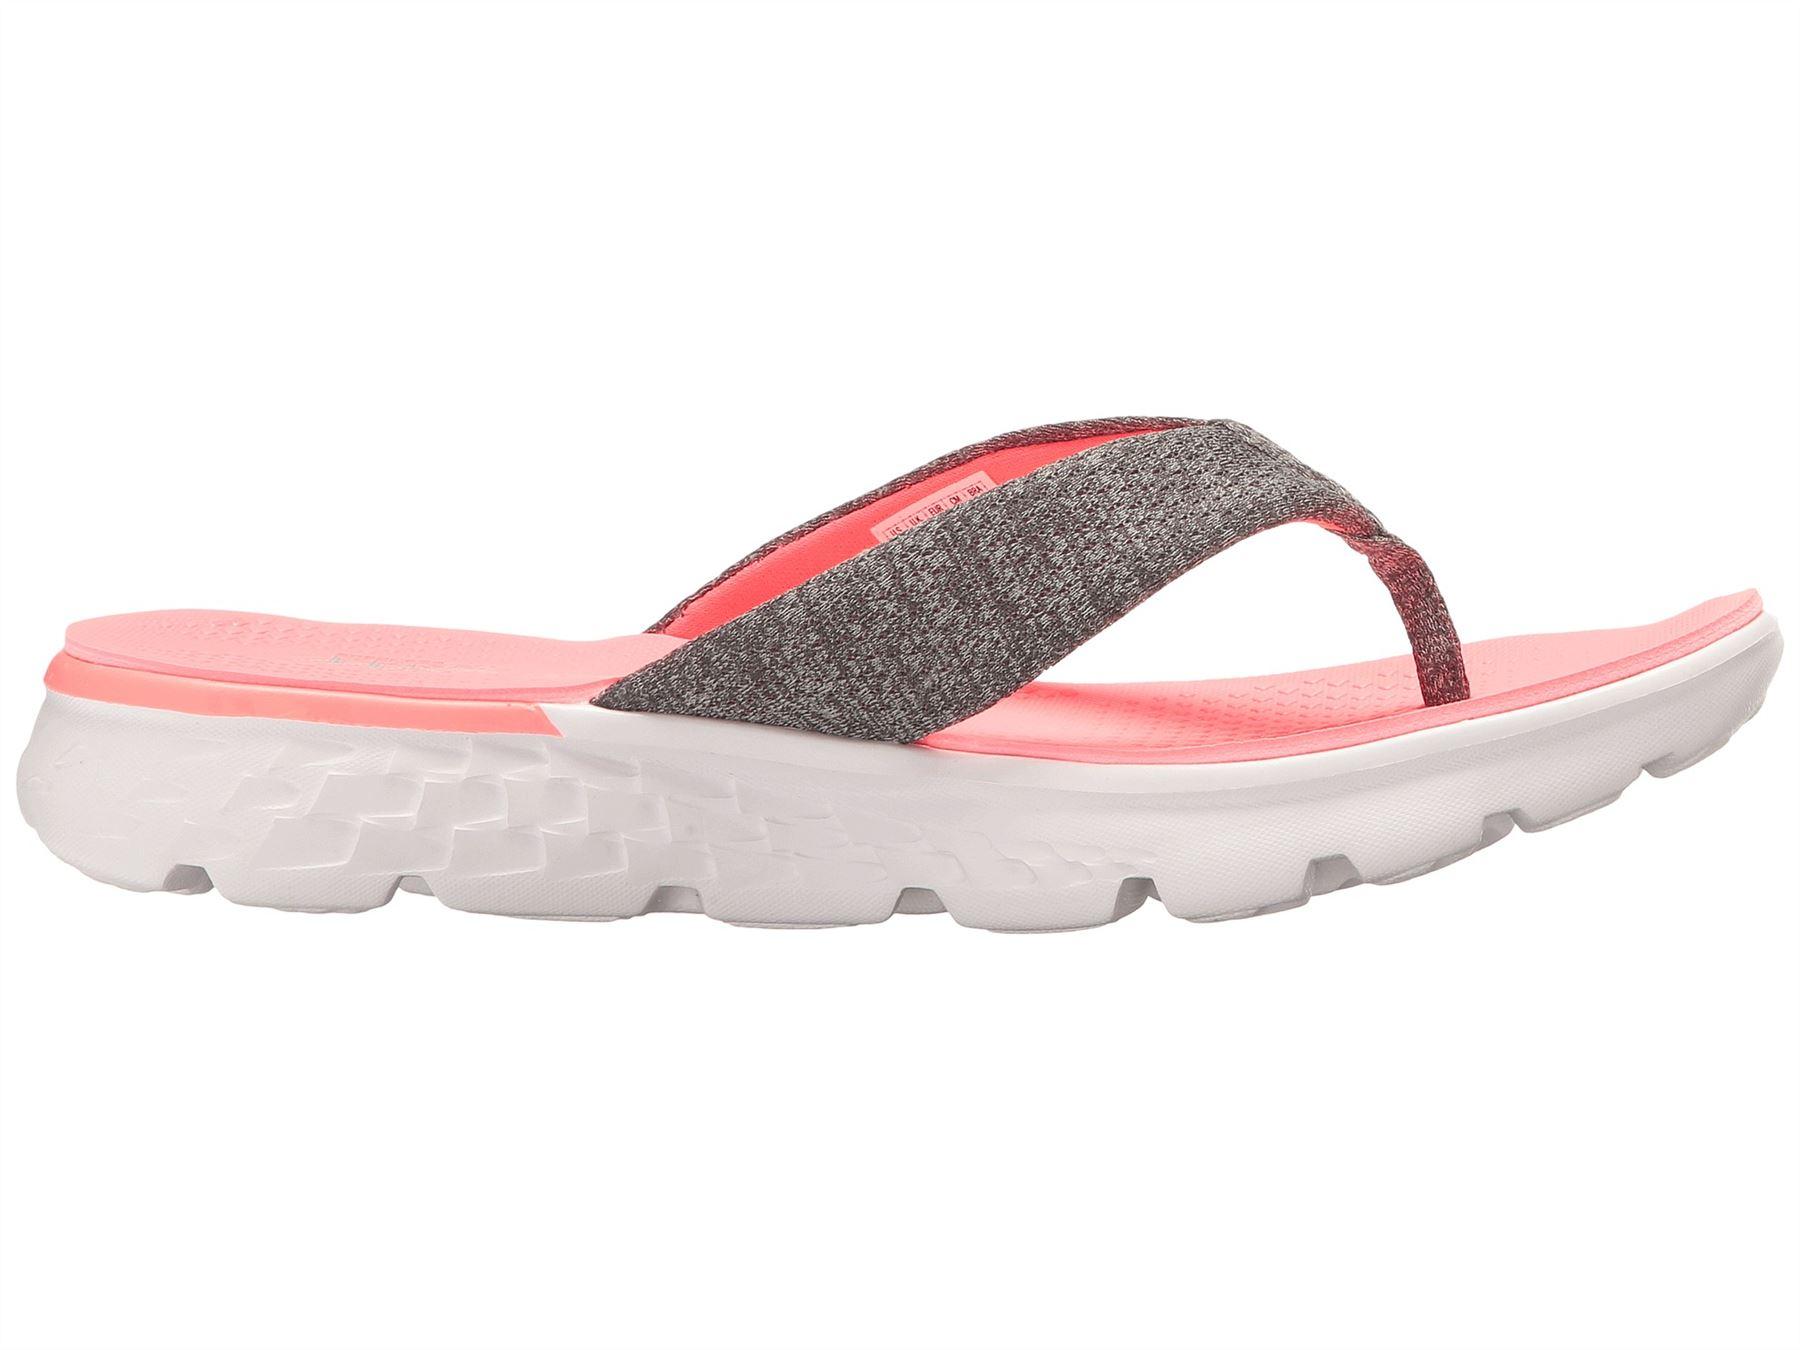 Skechers Performance Women's On The GO 400 Vivacity Sandal; Picture 2 of 7;  Picture 3 of 7; Picture 4 of 7